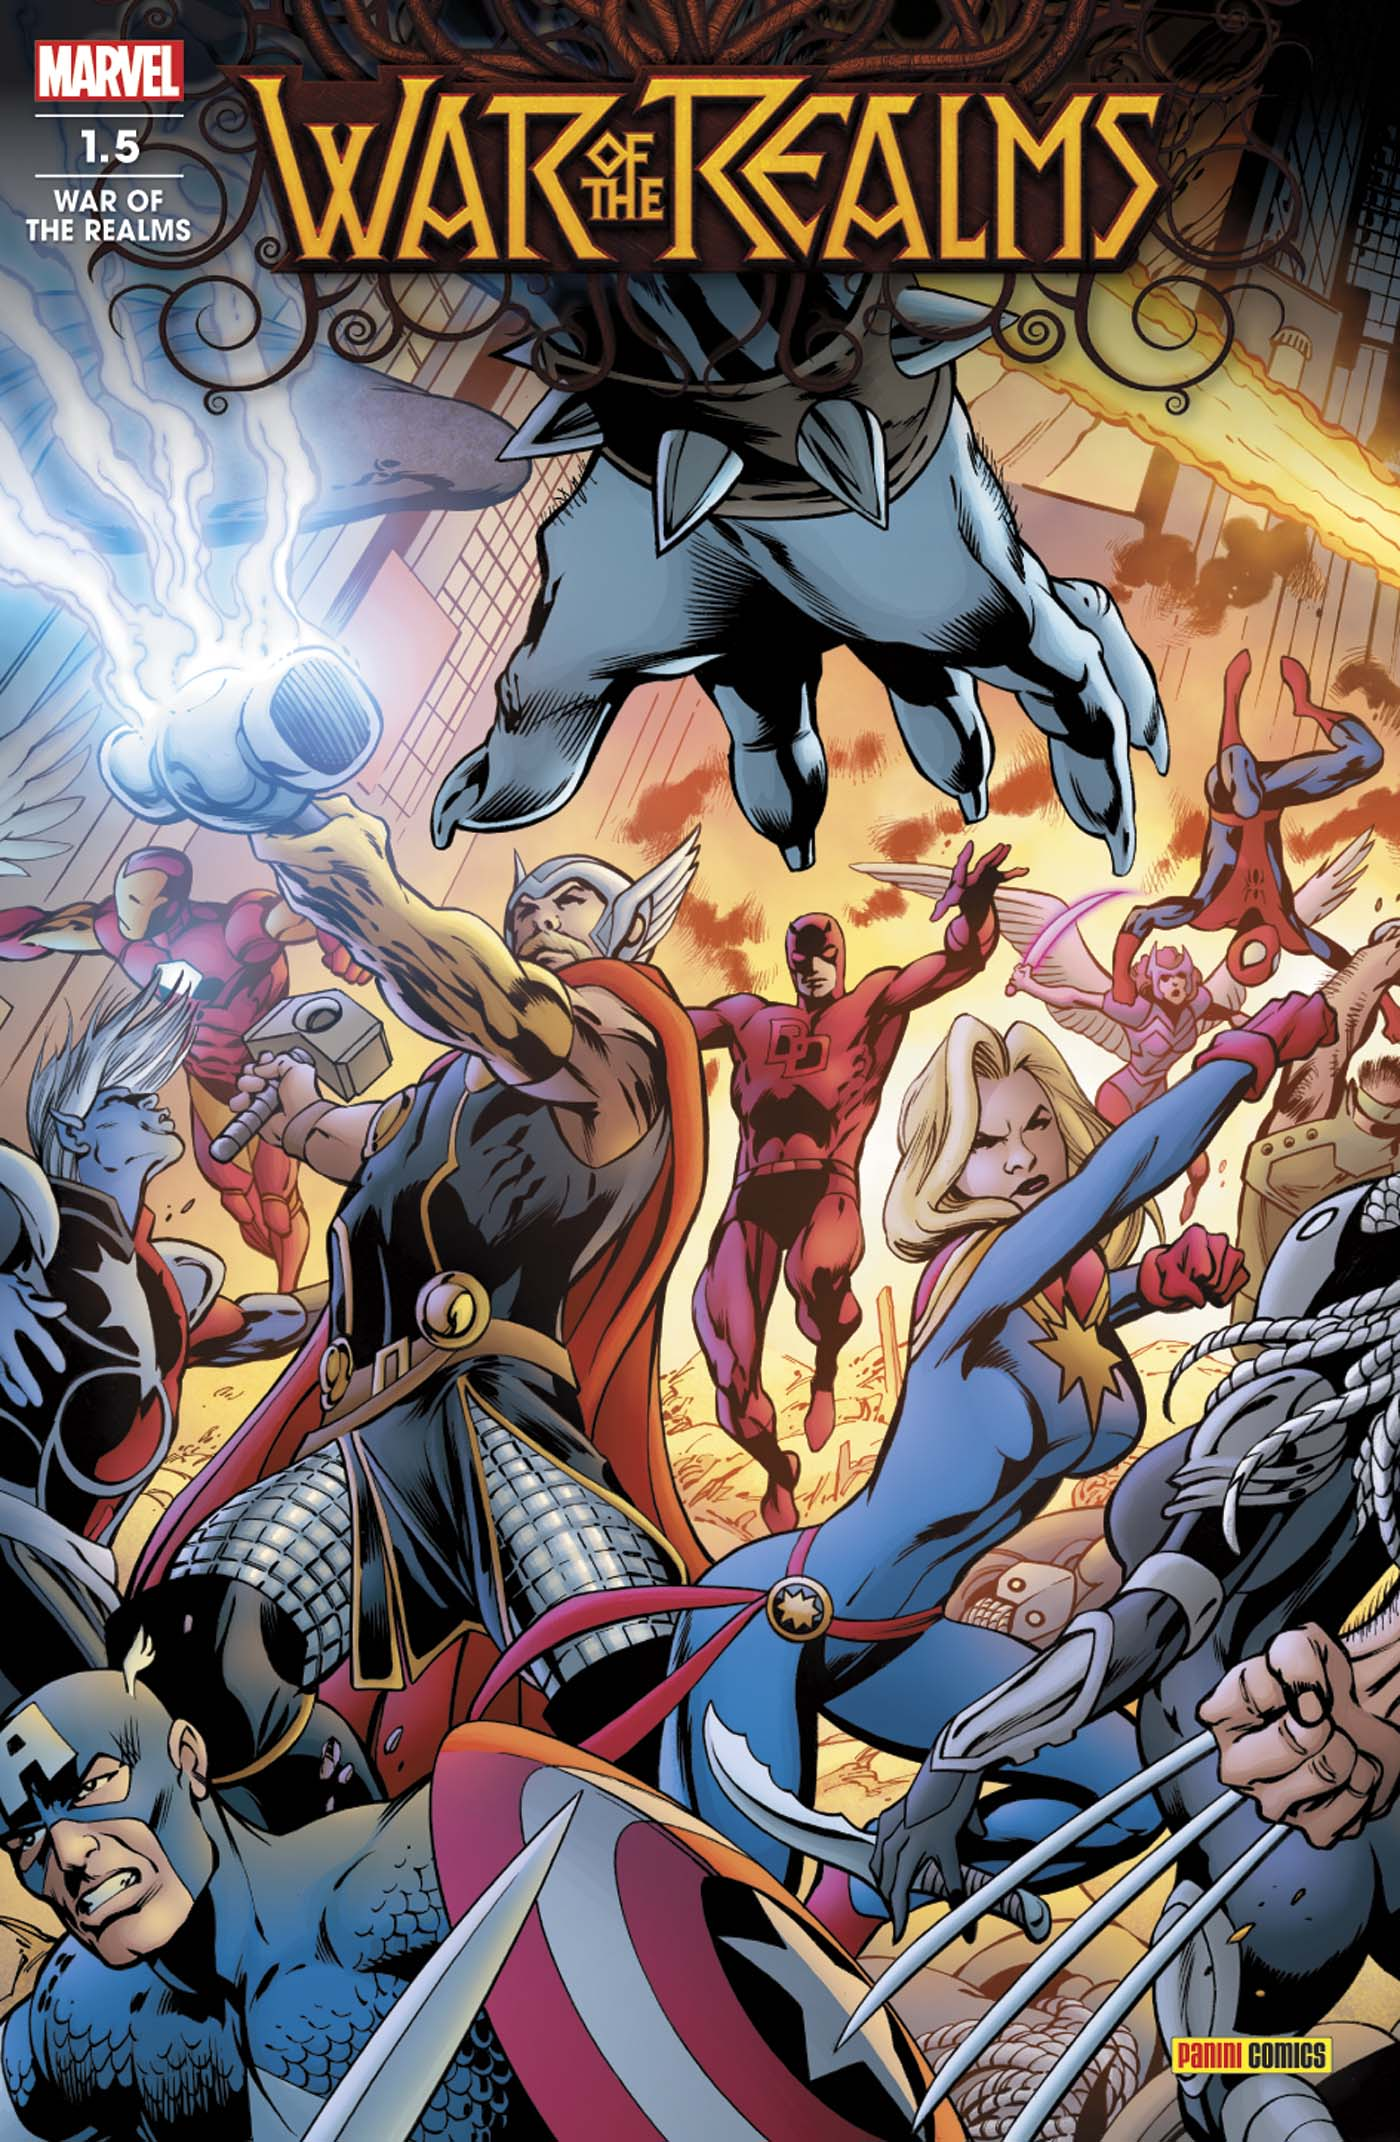 WAR OF THE REALMS 1.5